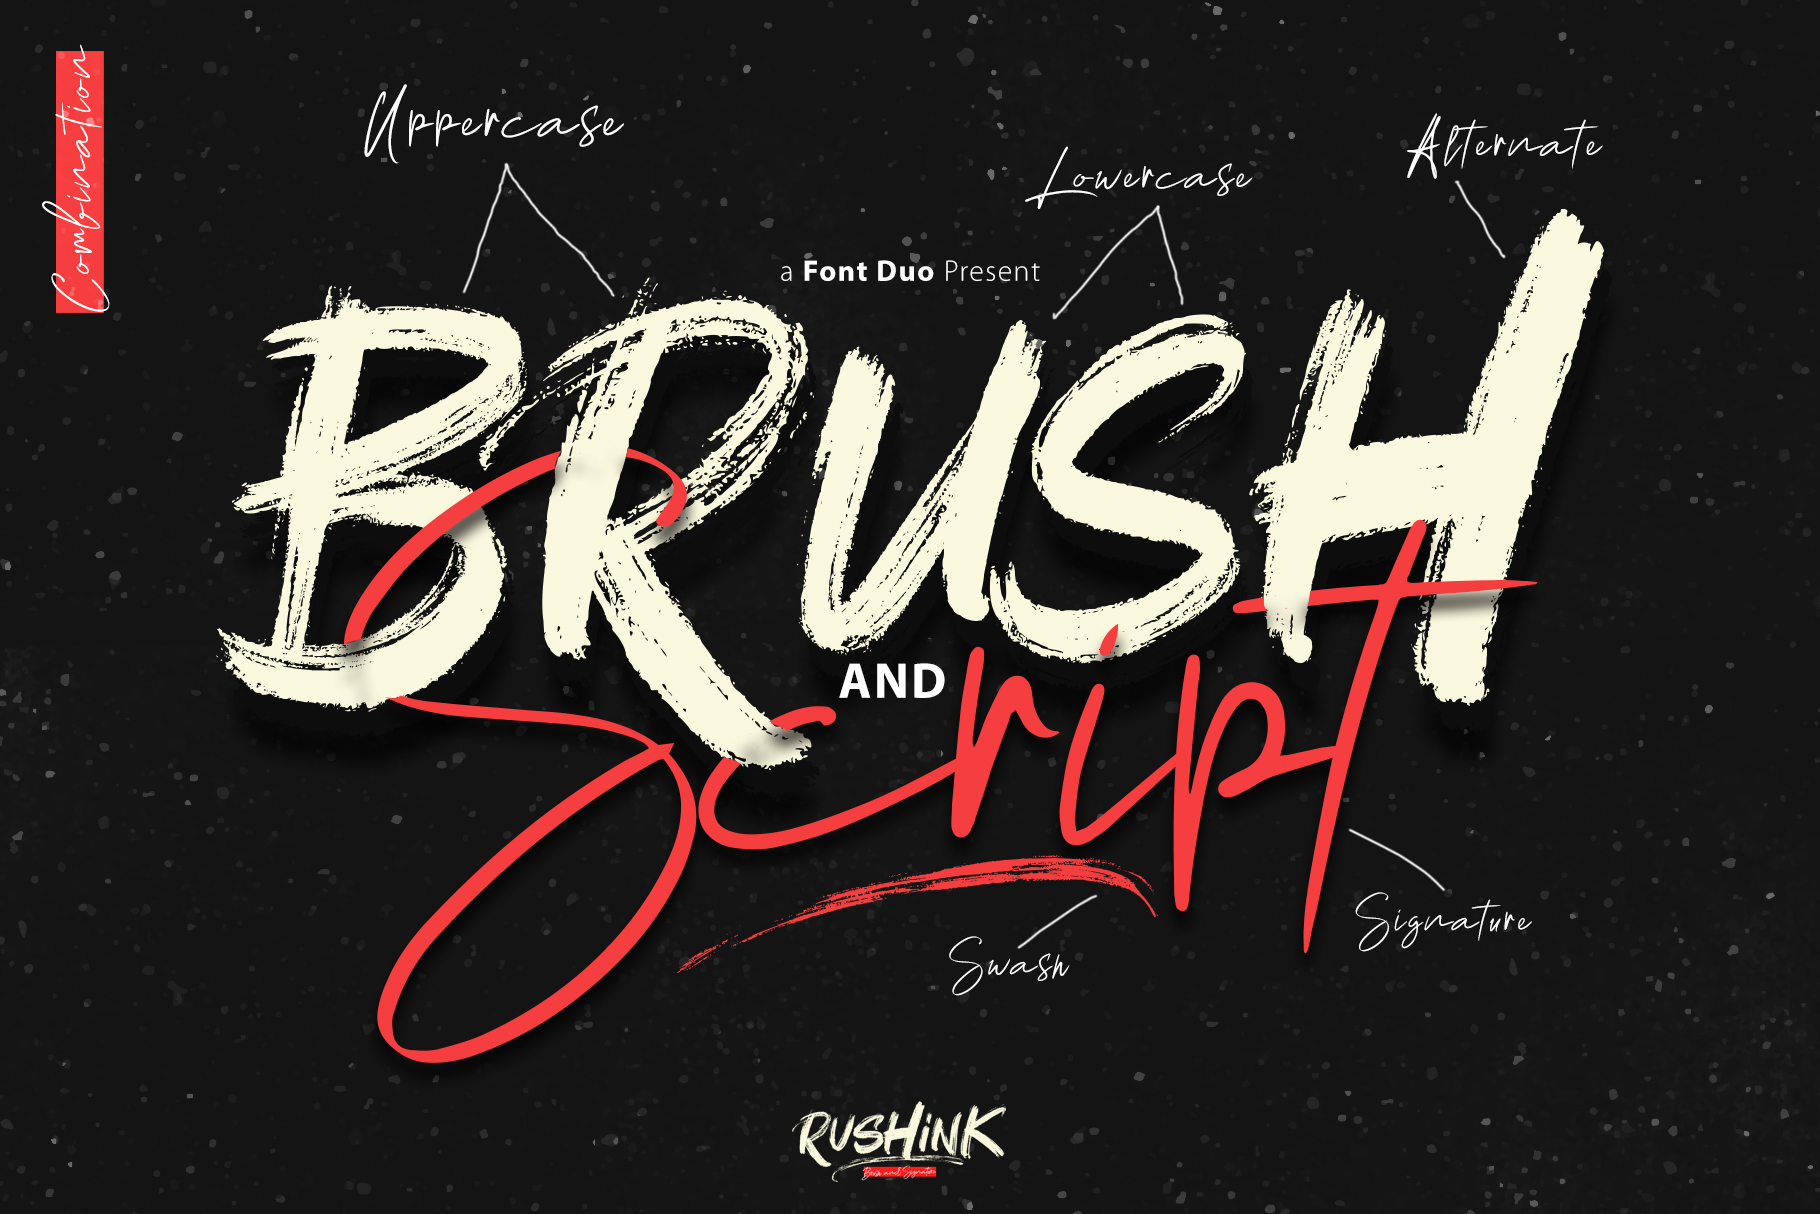 Rushink Font Duo | Brush & Signature example image 4